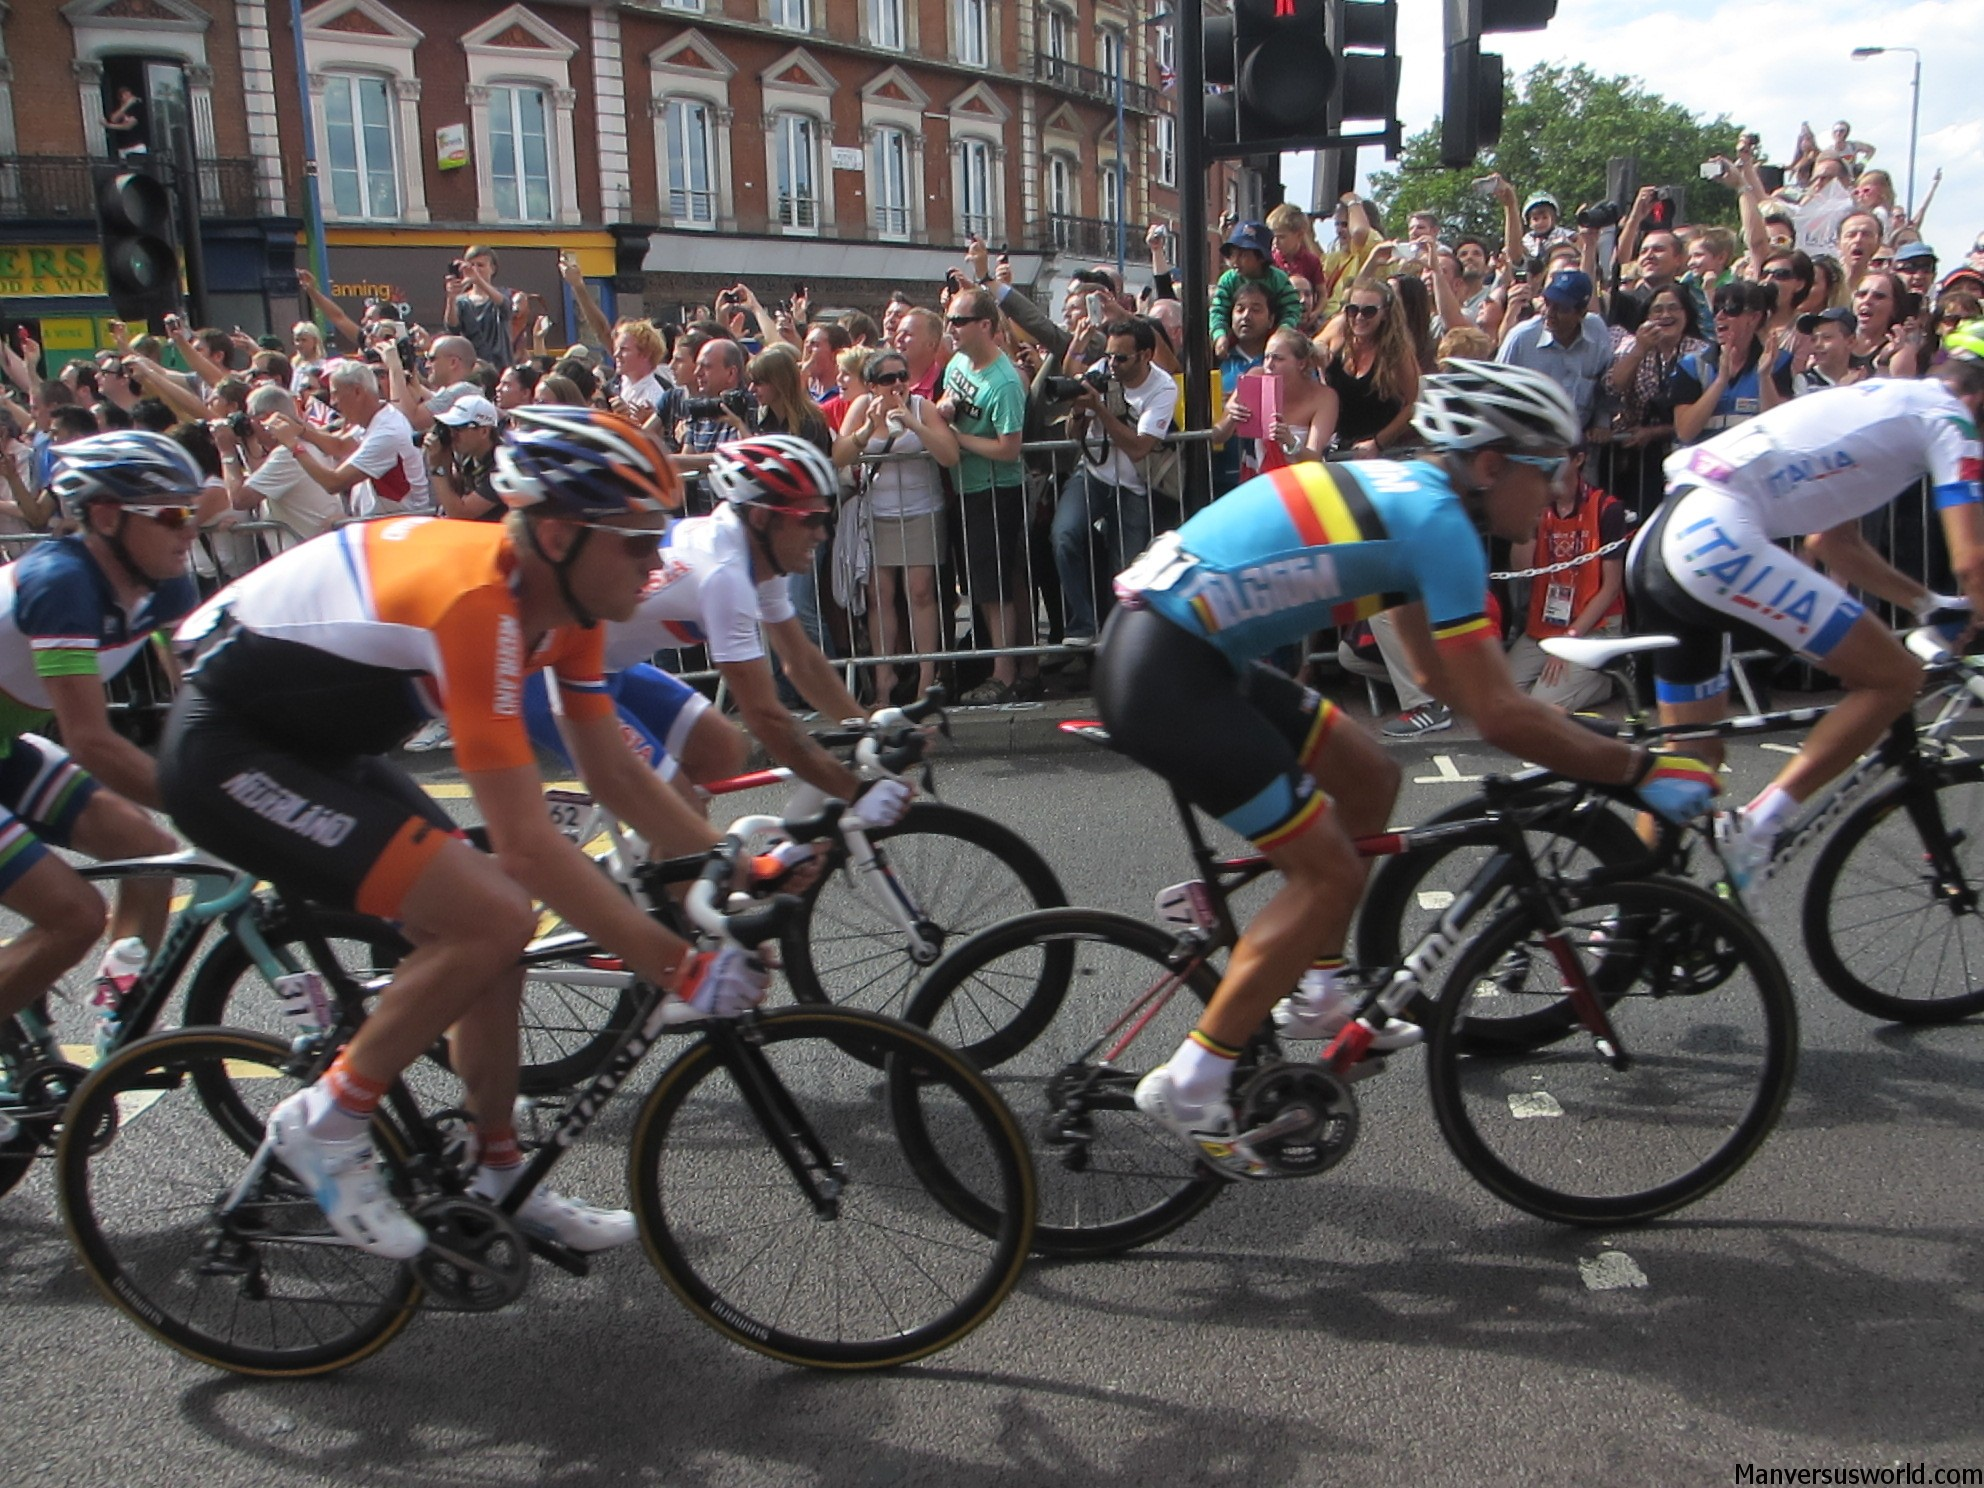 The London 2012 Olympics road race from Putney